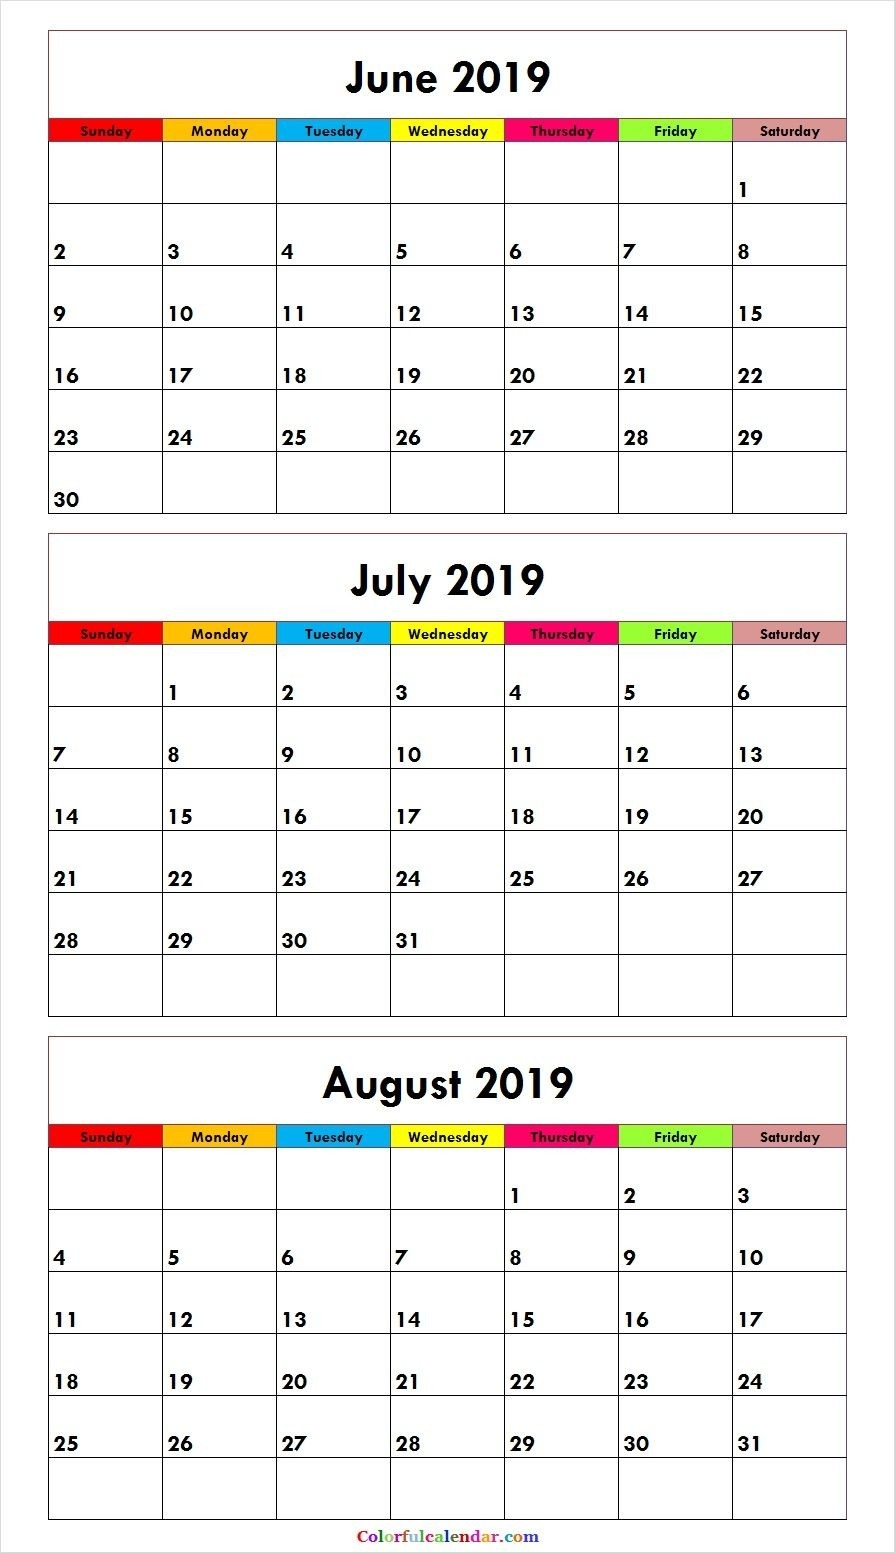 New Cute June July August 2019 Calendar Design (With Images-Blank Chalender For Junejuly And August